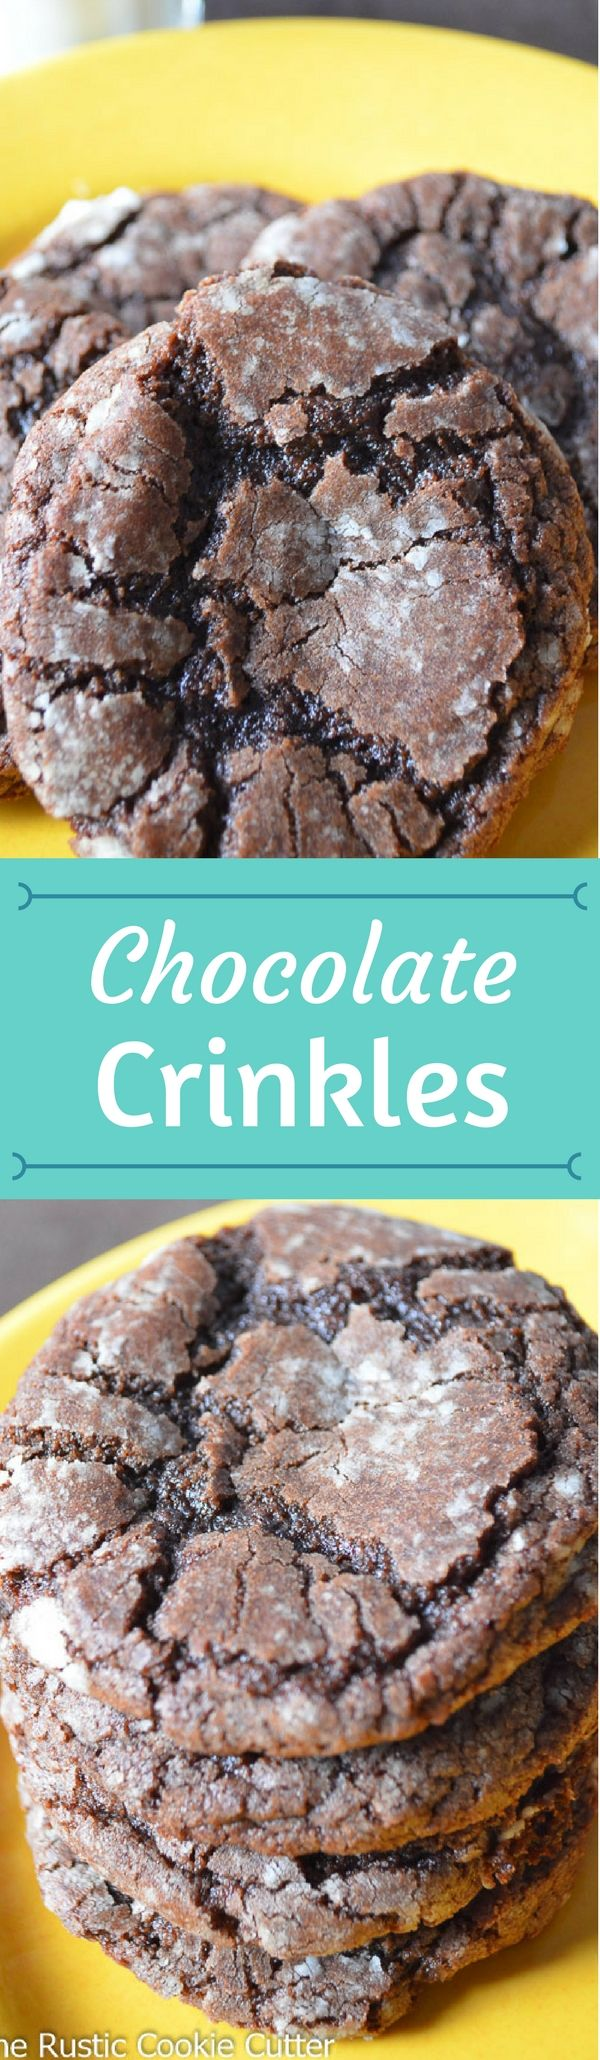 These Chocolate Crinkle Cookies are so chewy with the slightest crunch from the powdered sugar-coating.  And they're not overly rich.